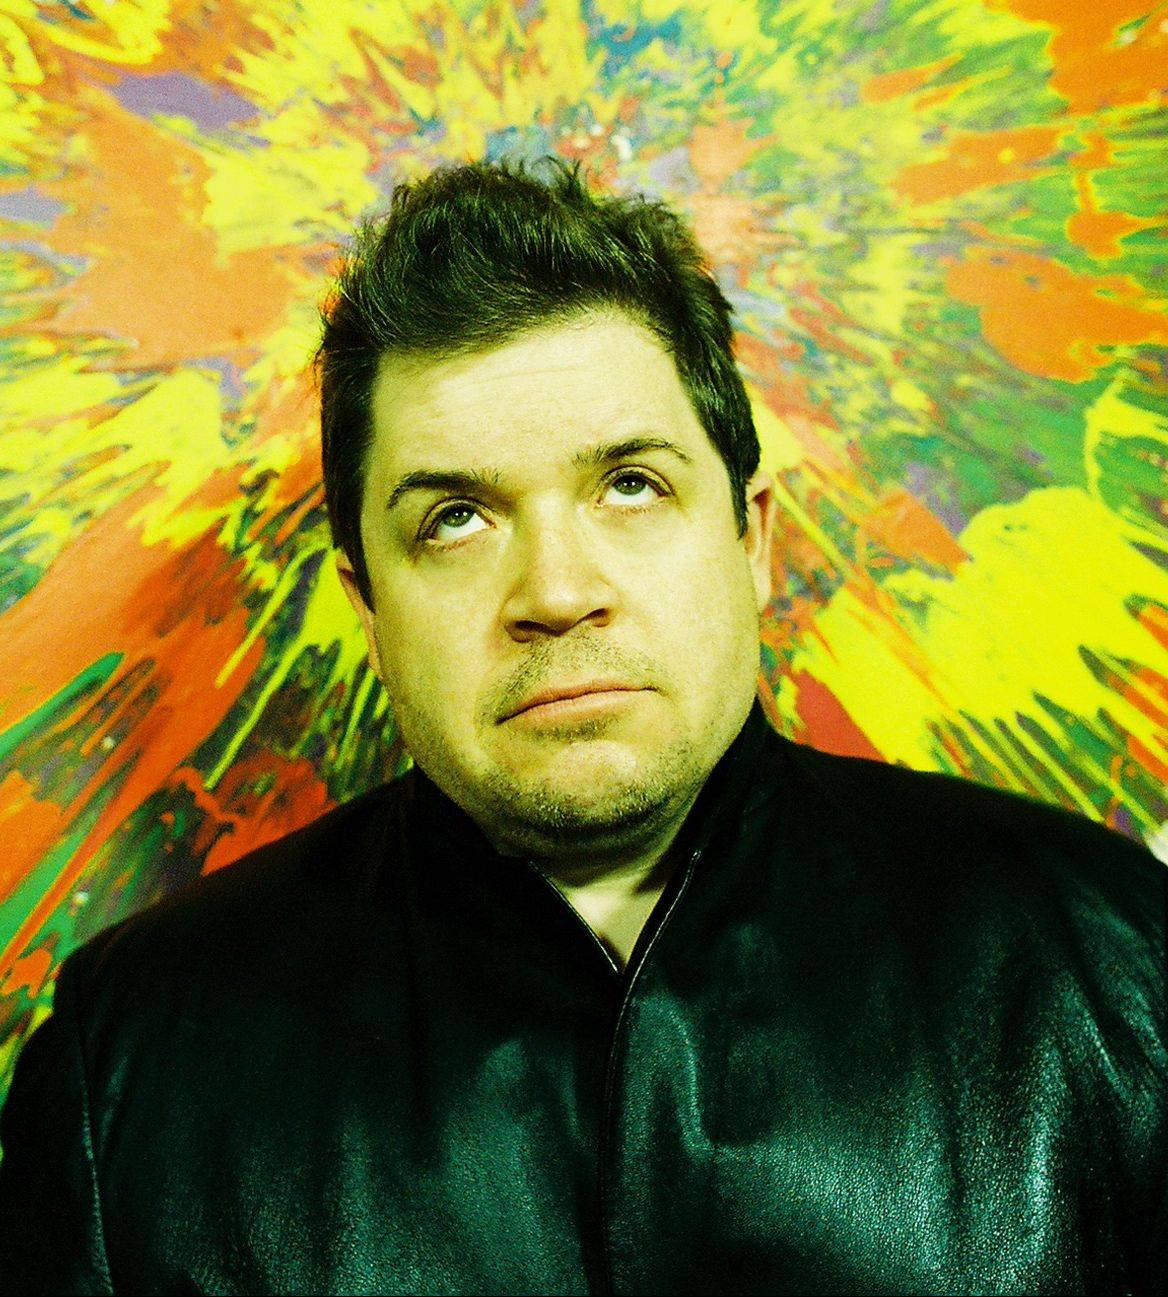 Patton Oswalt performs at 7:30 and 10 p.m. Thursday, June 14, at the Vic Theatre.